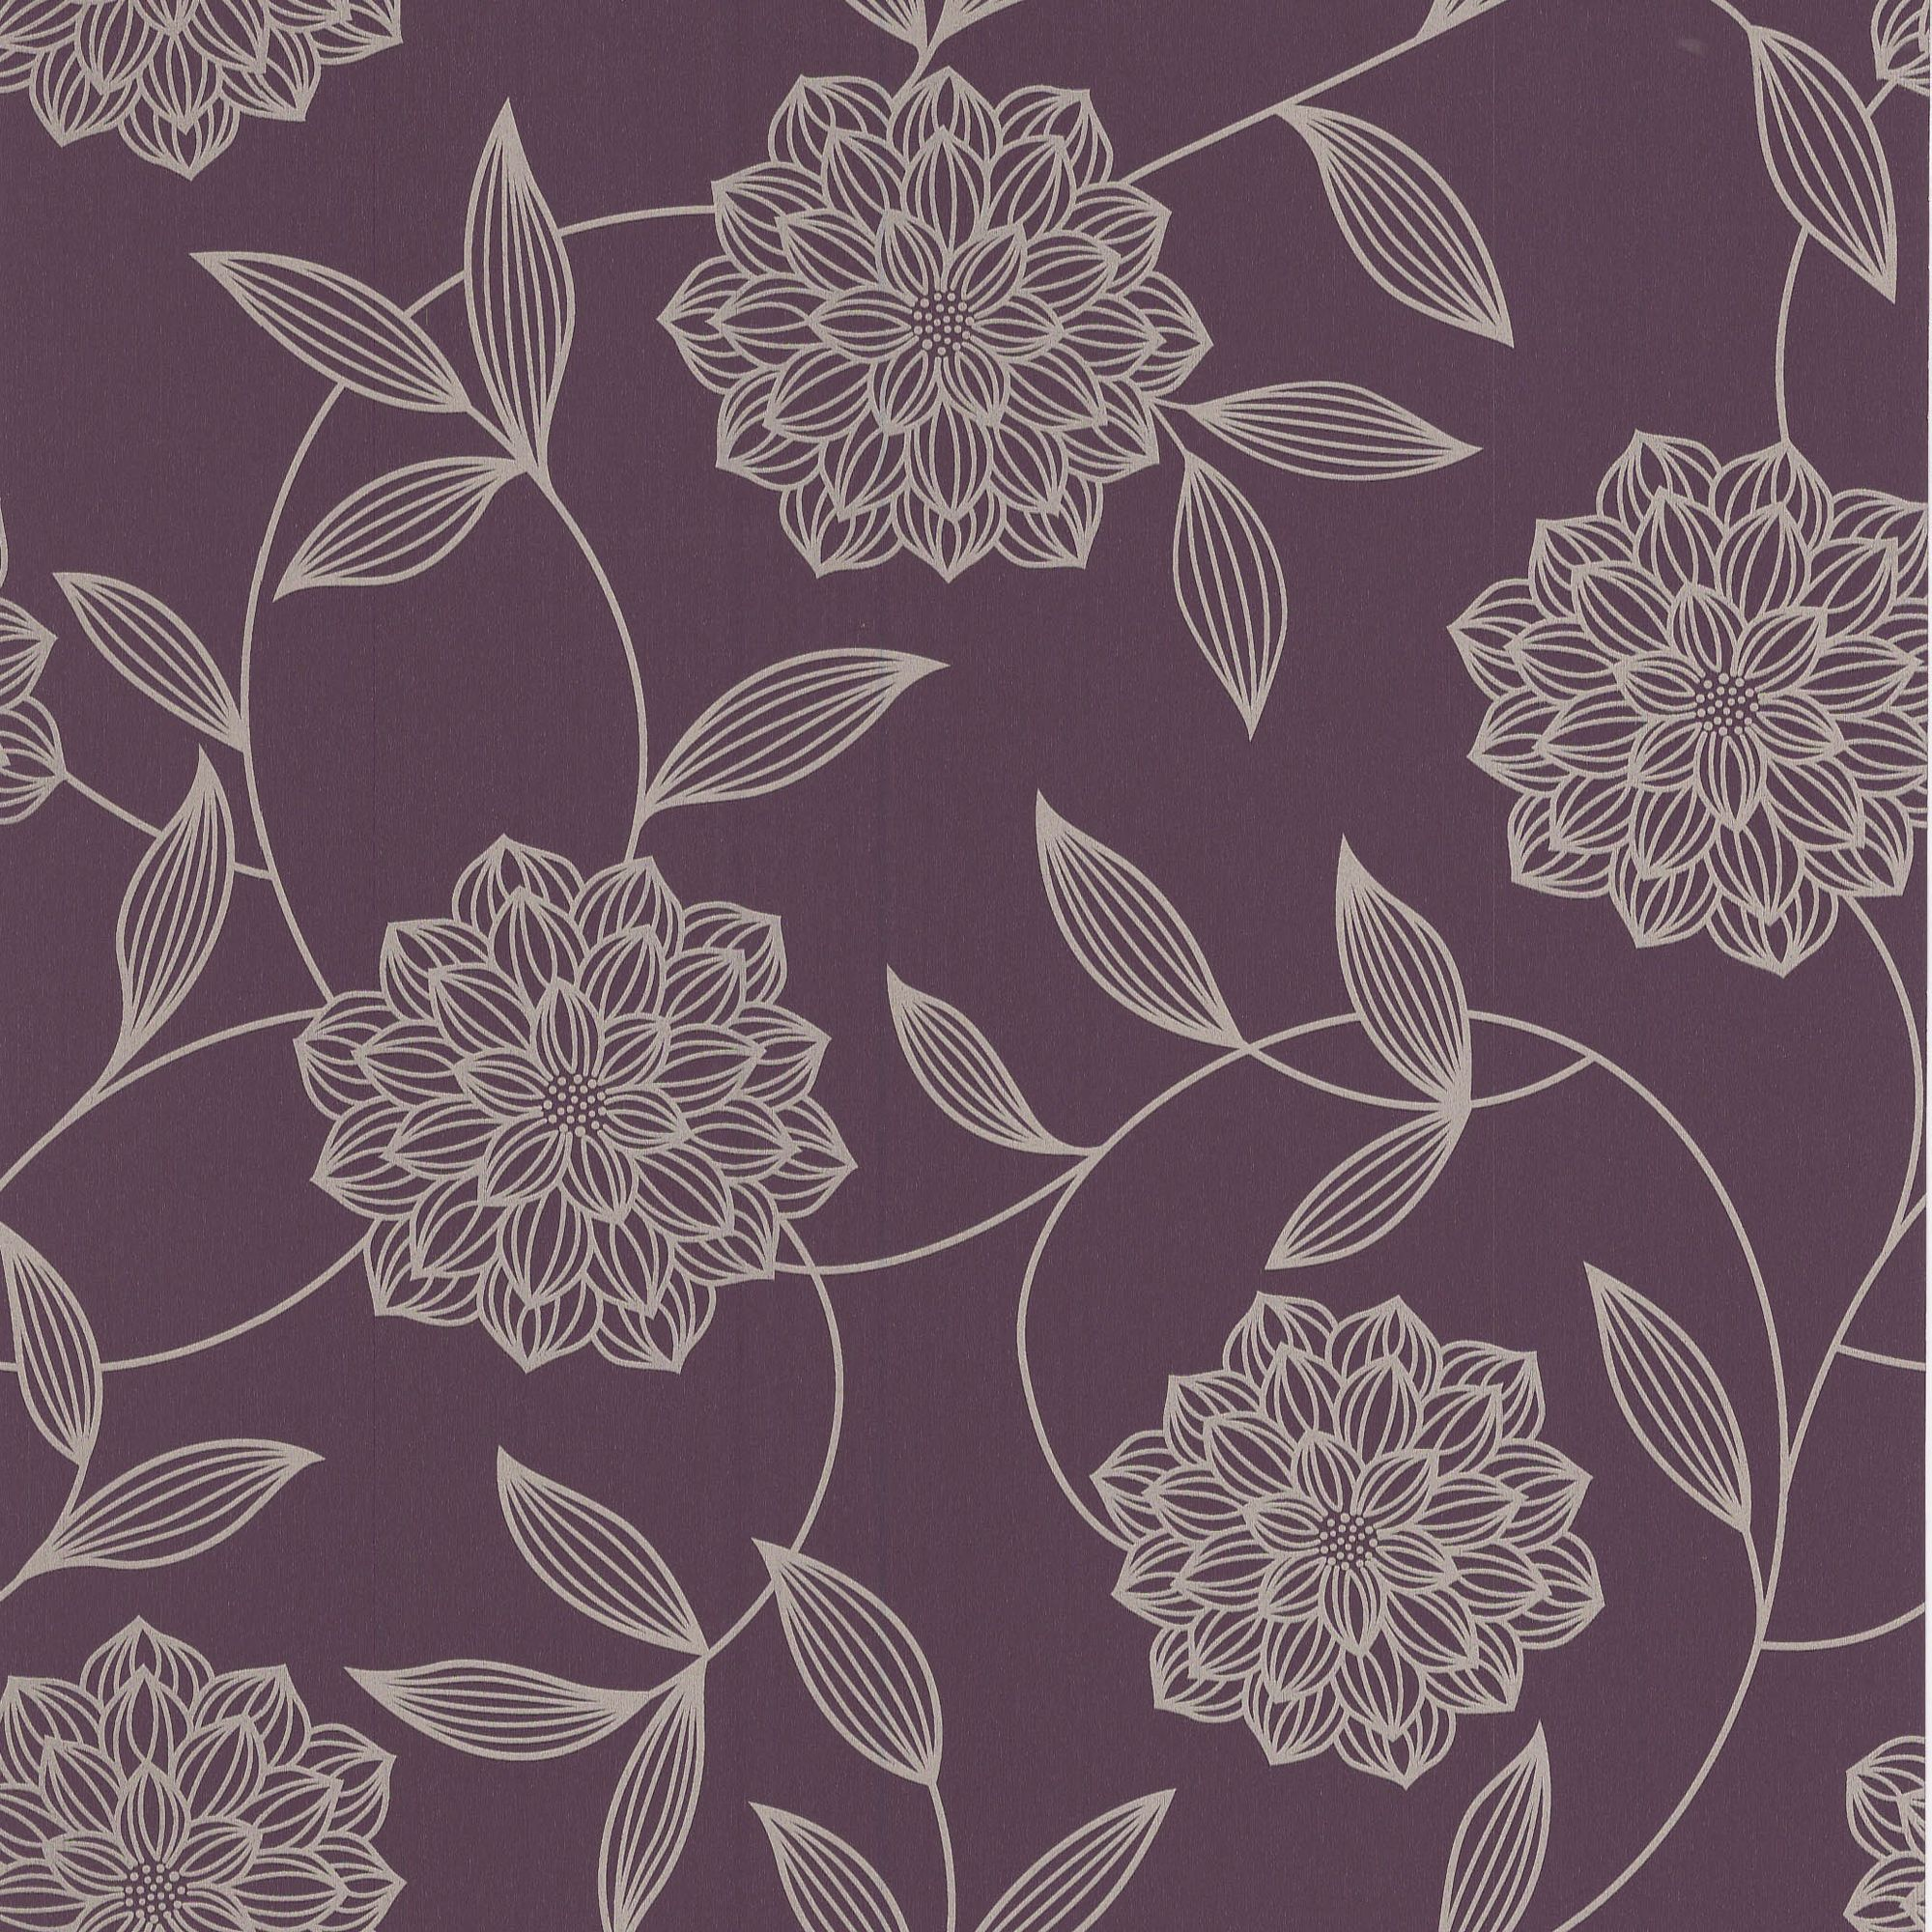 Kitchen Wallpaper At B Q: Graham & Brown Superfresco Plum Floral Wallpaper